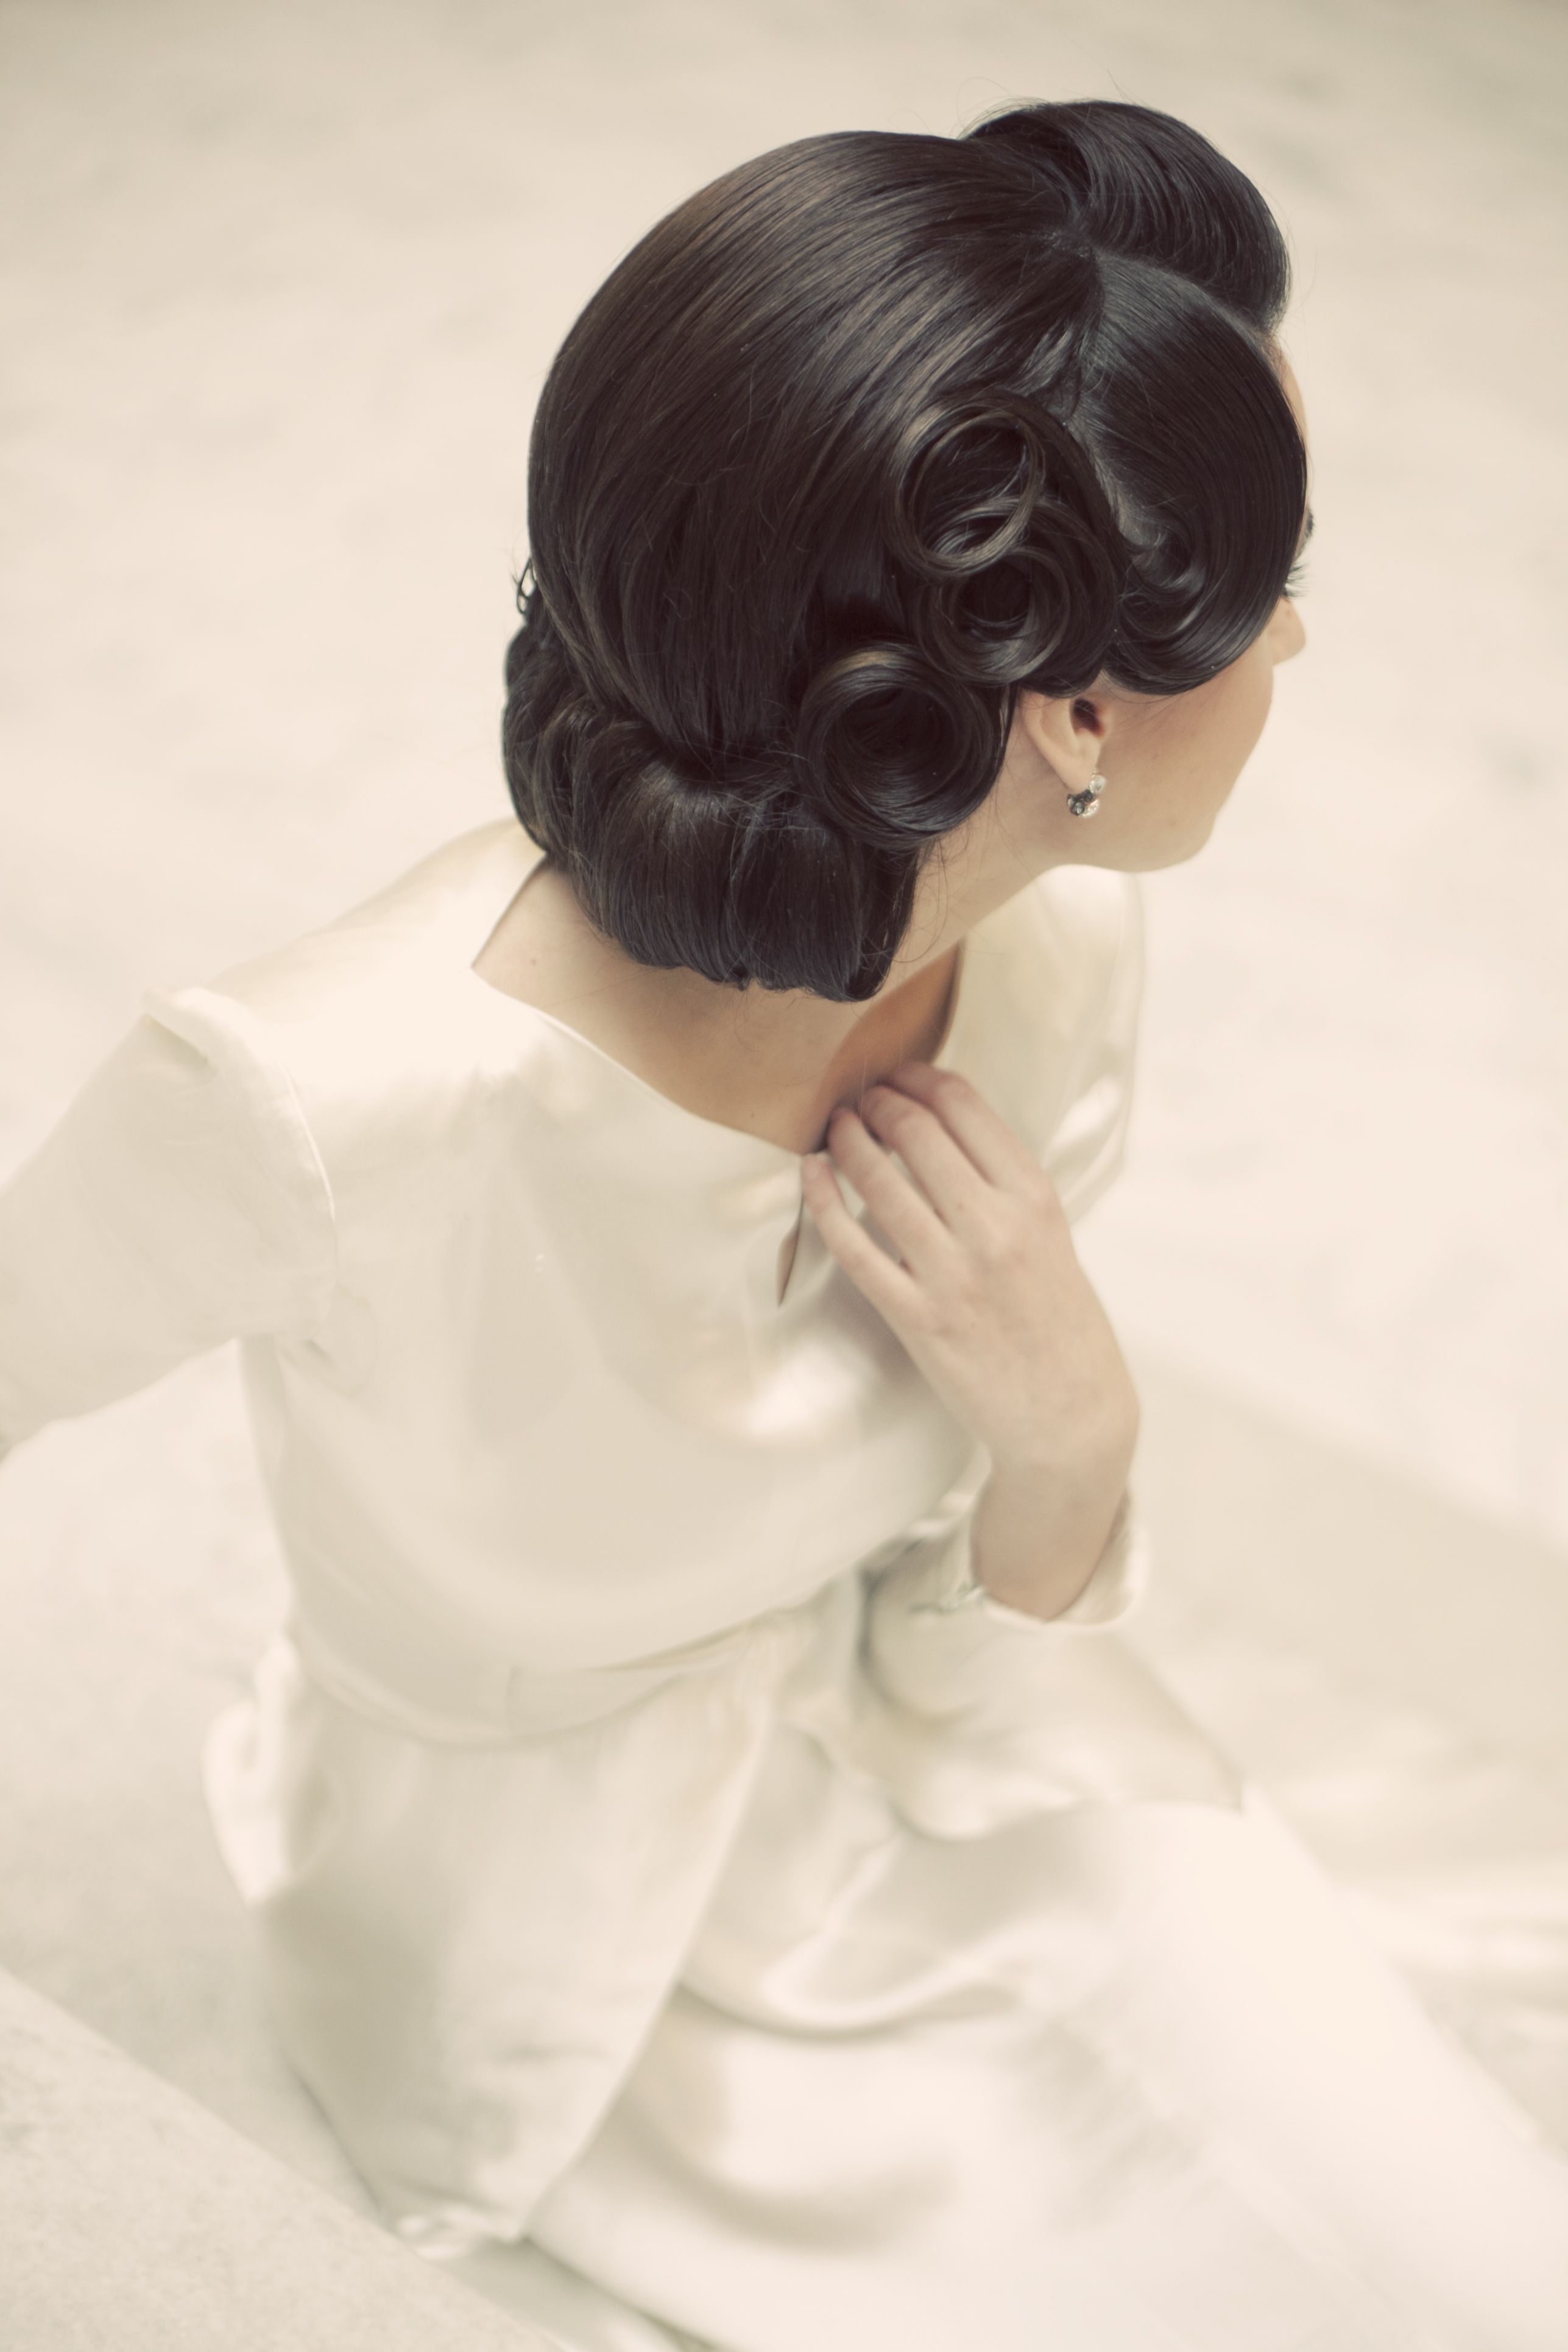 big pin curls, rolled bottom #updo #vintage | HairStyles ...